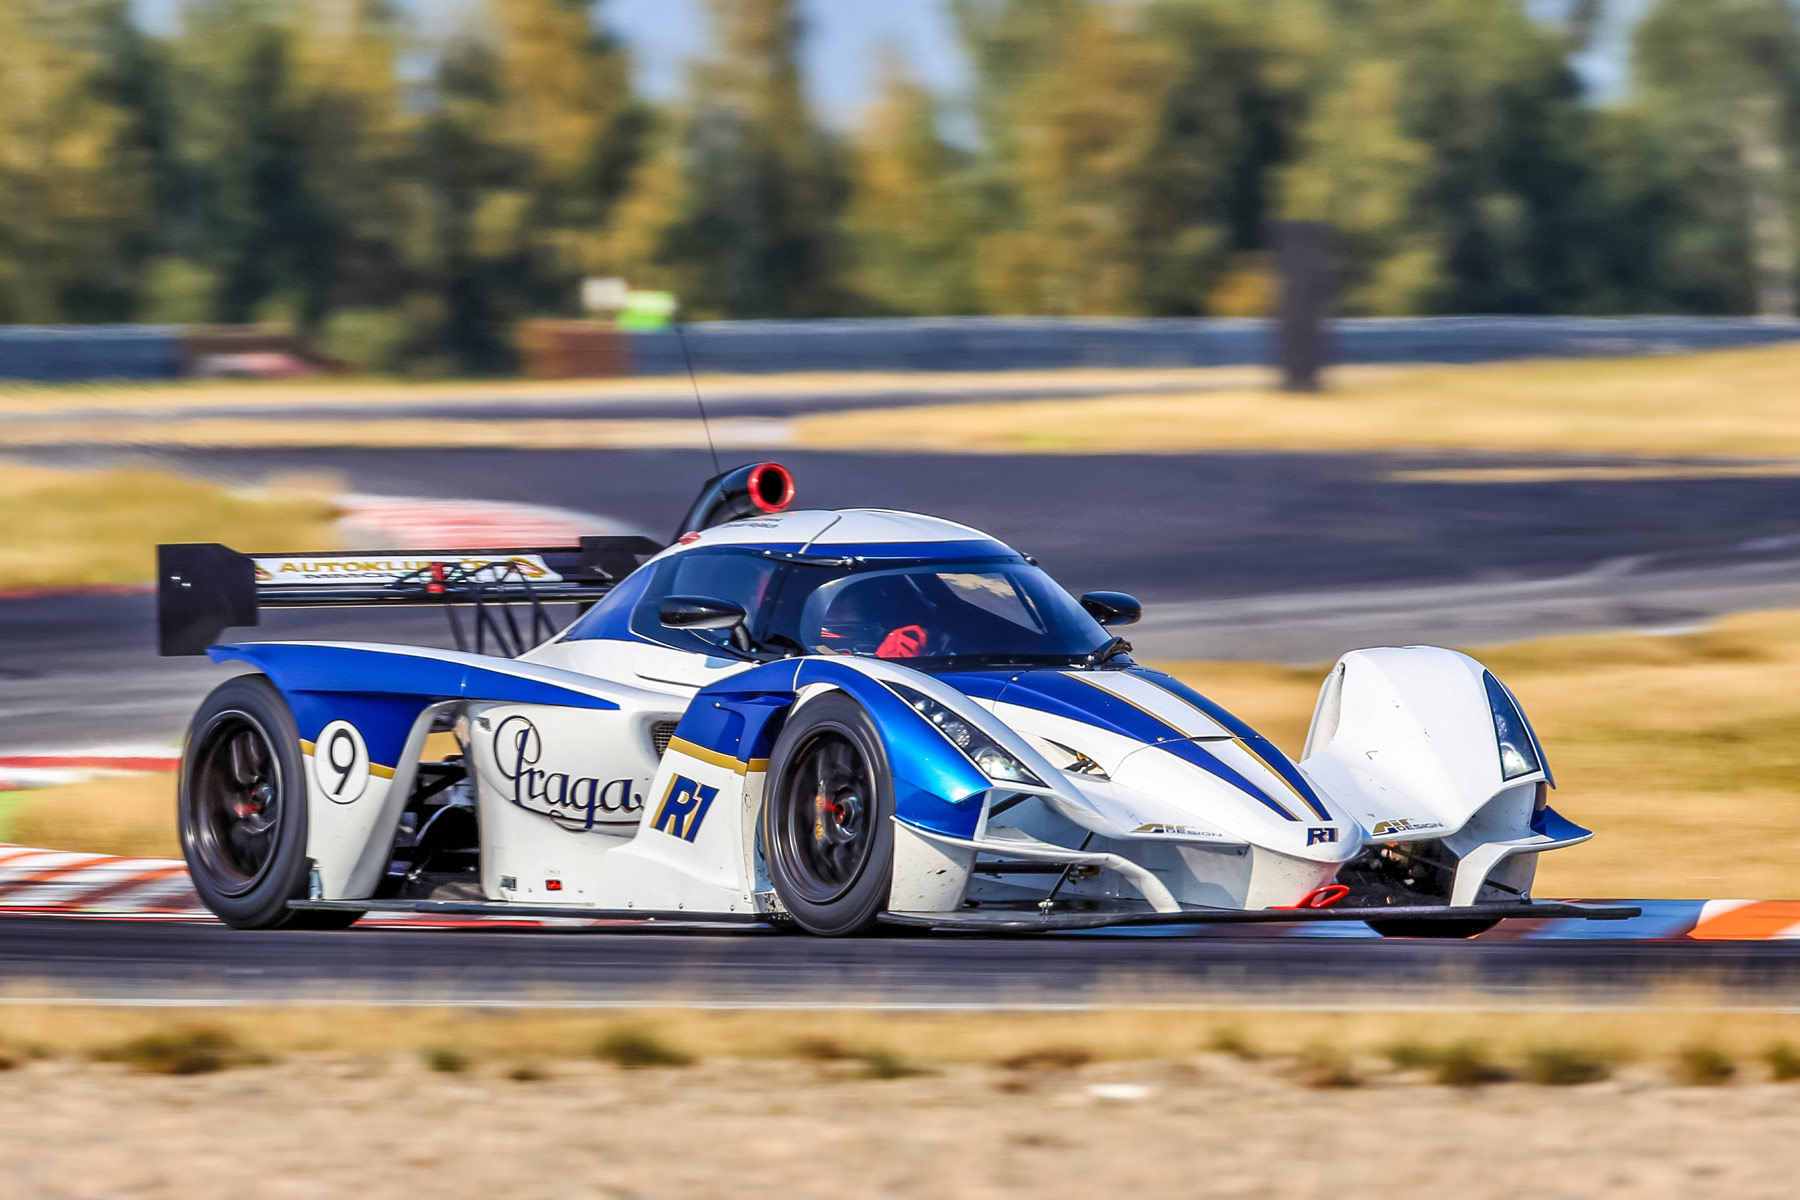 Praga R1 – Endurance champion of FIA-CEZ Most